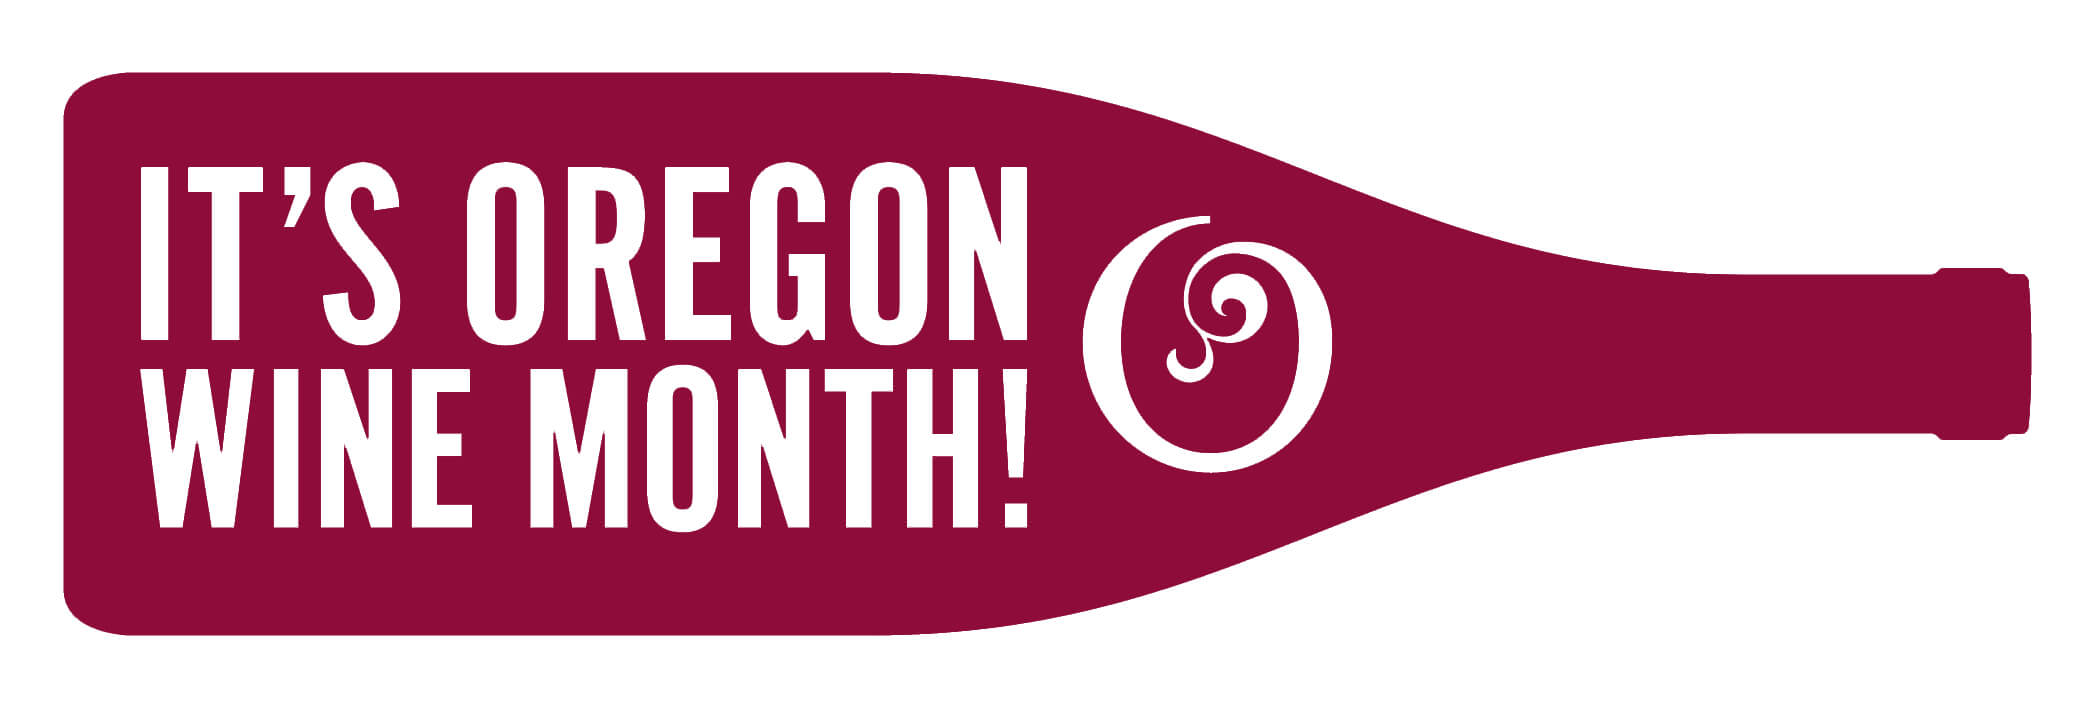 Oregon Wine Month Horizontal